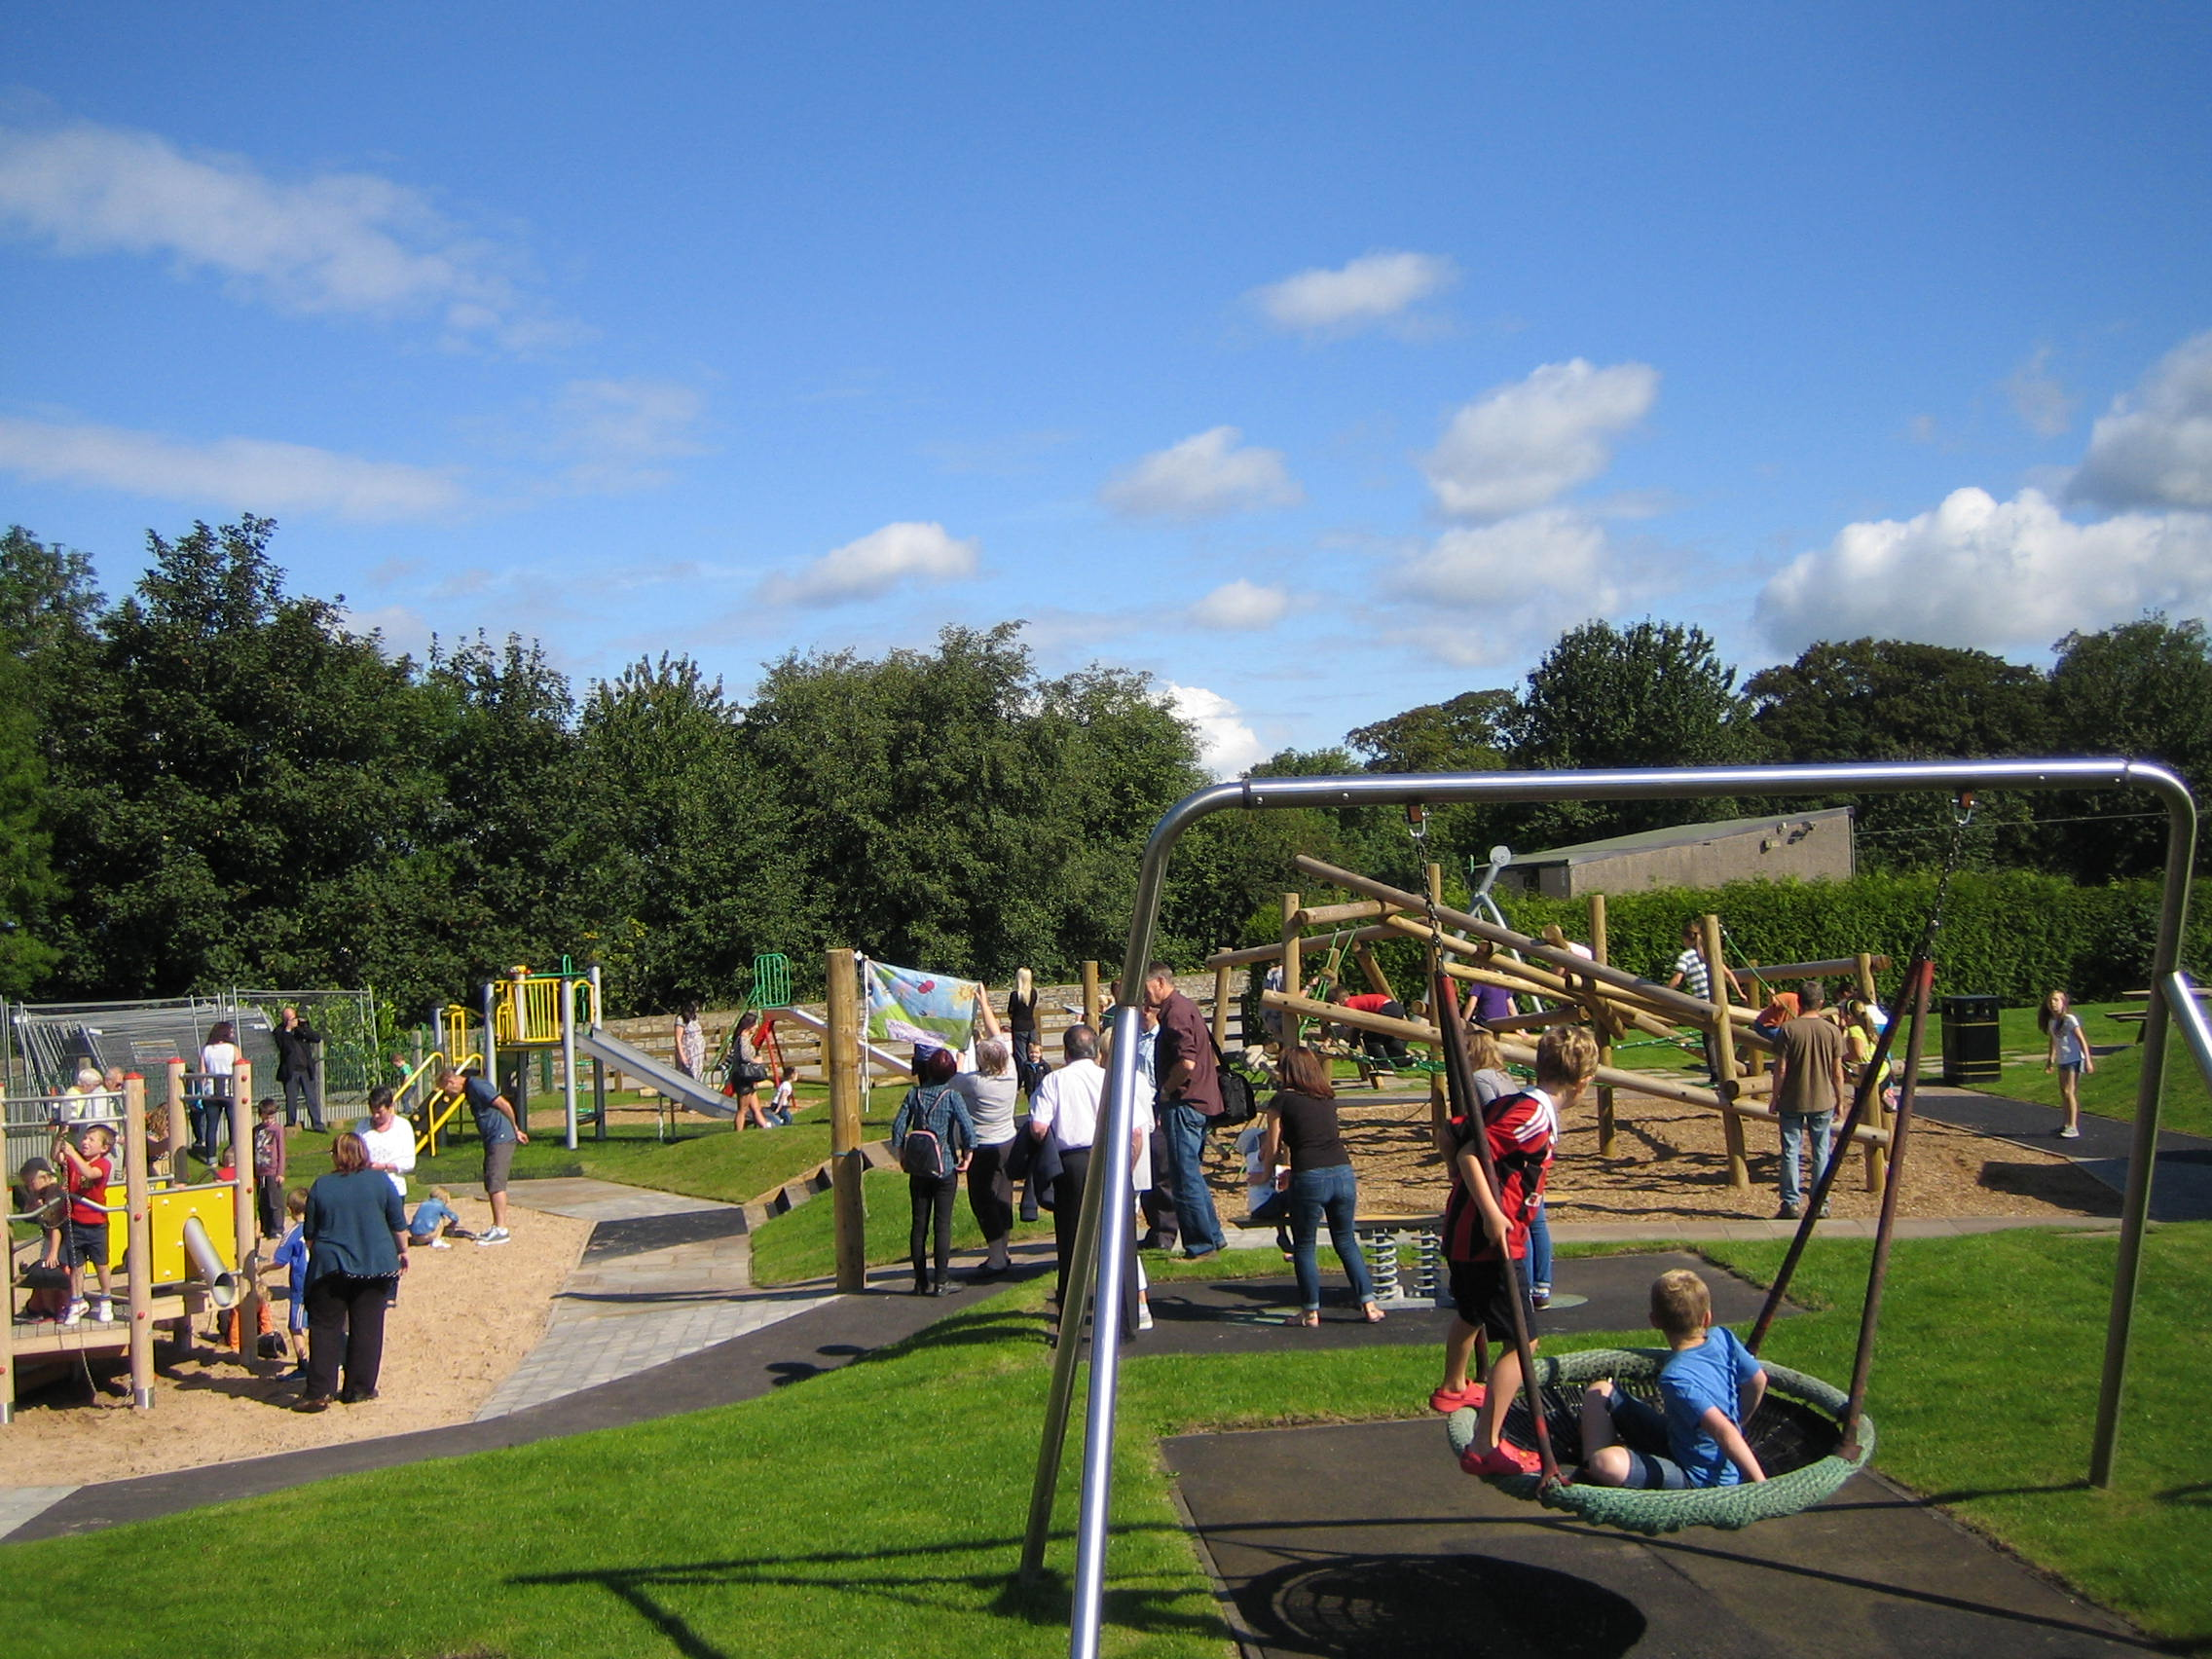 Bolton-le-Sands Playground